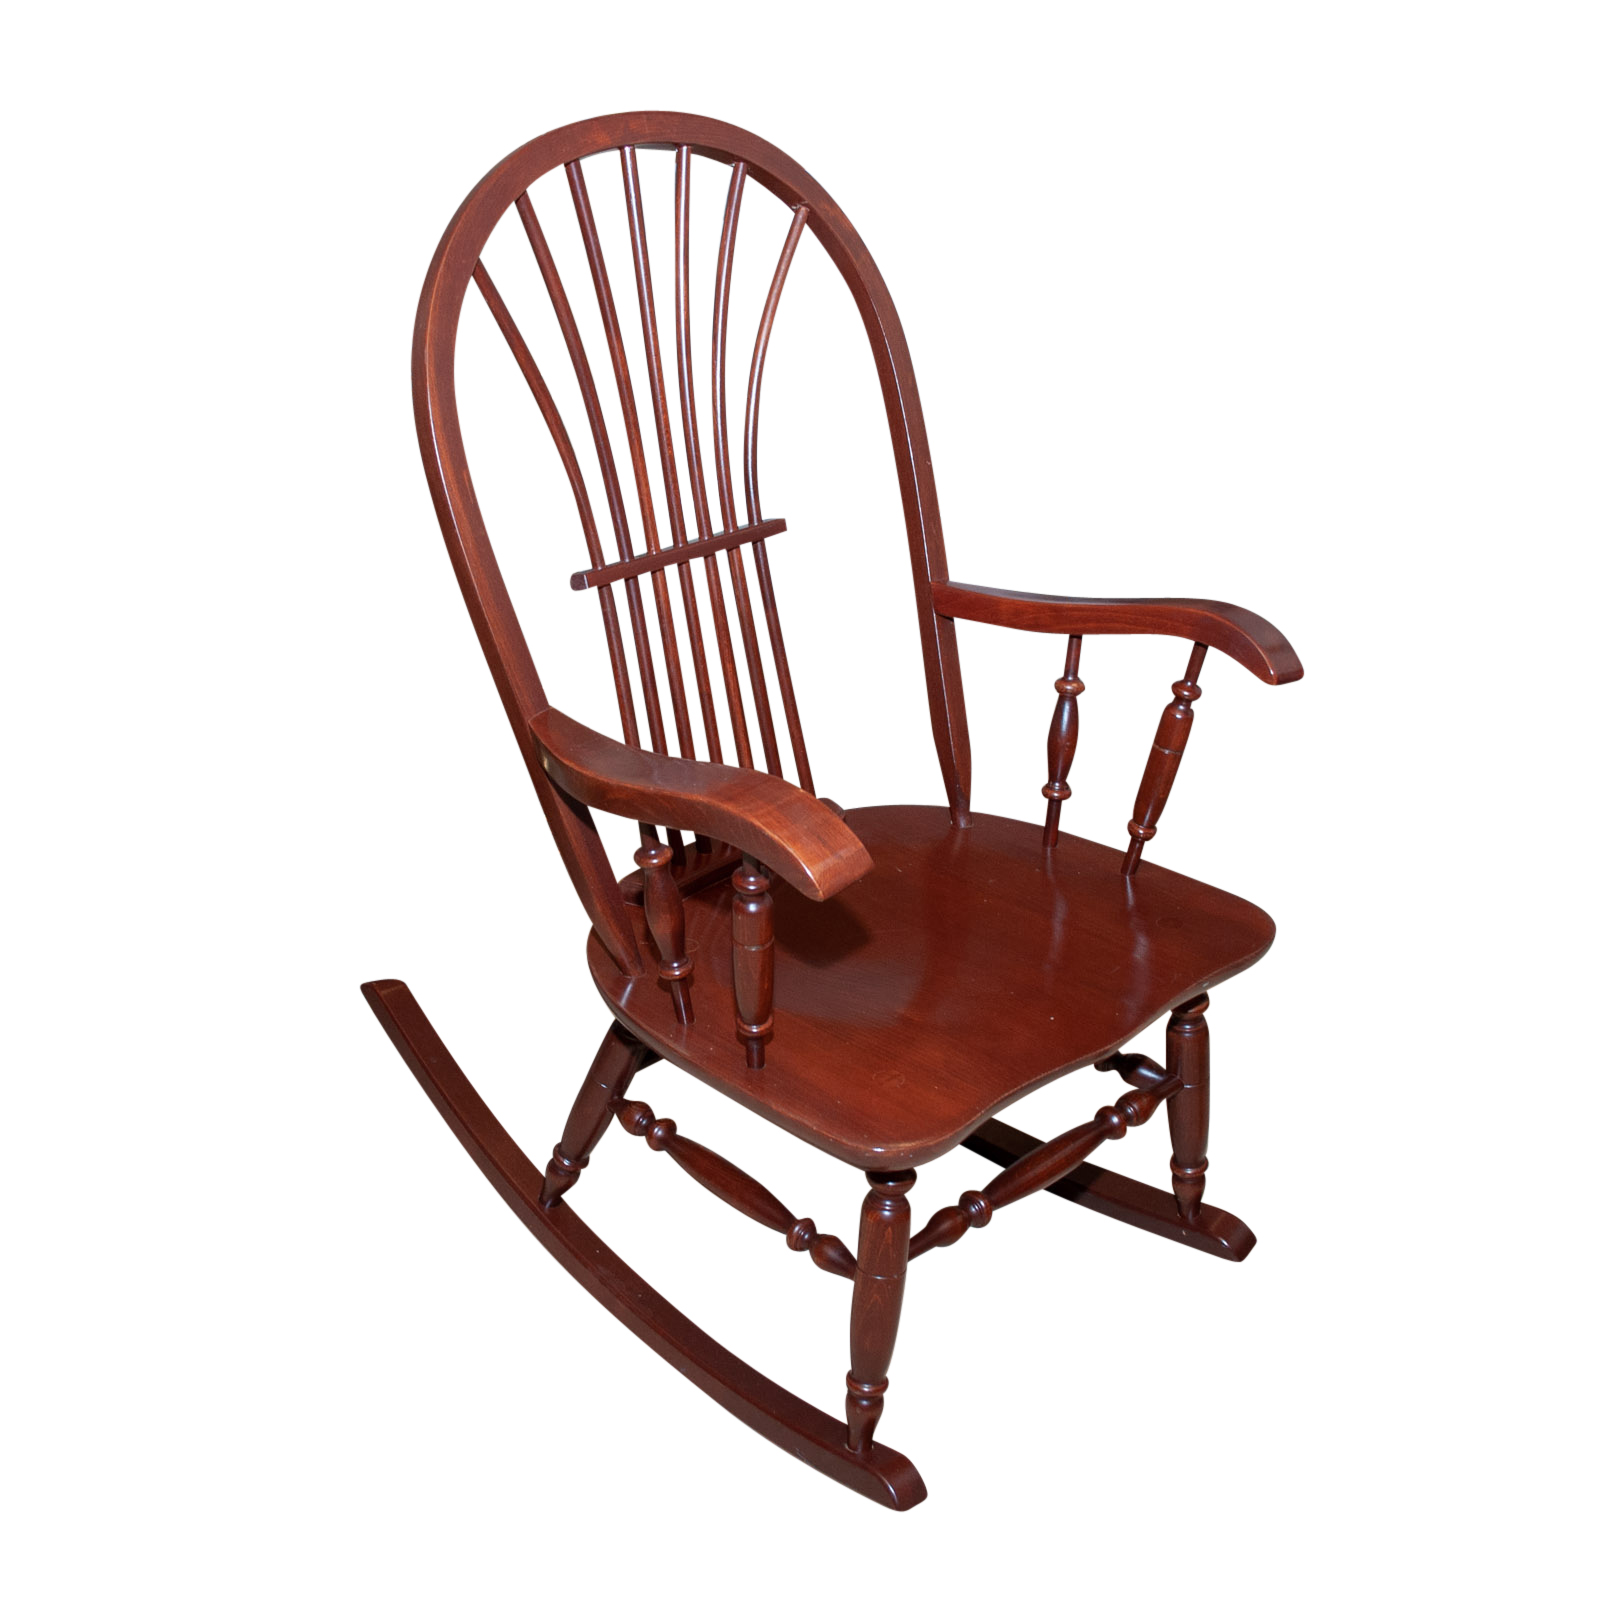 wood rocking chair styles childrens comfy chairs kli logatec furniture windsor style ebth